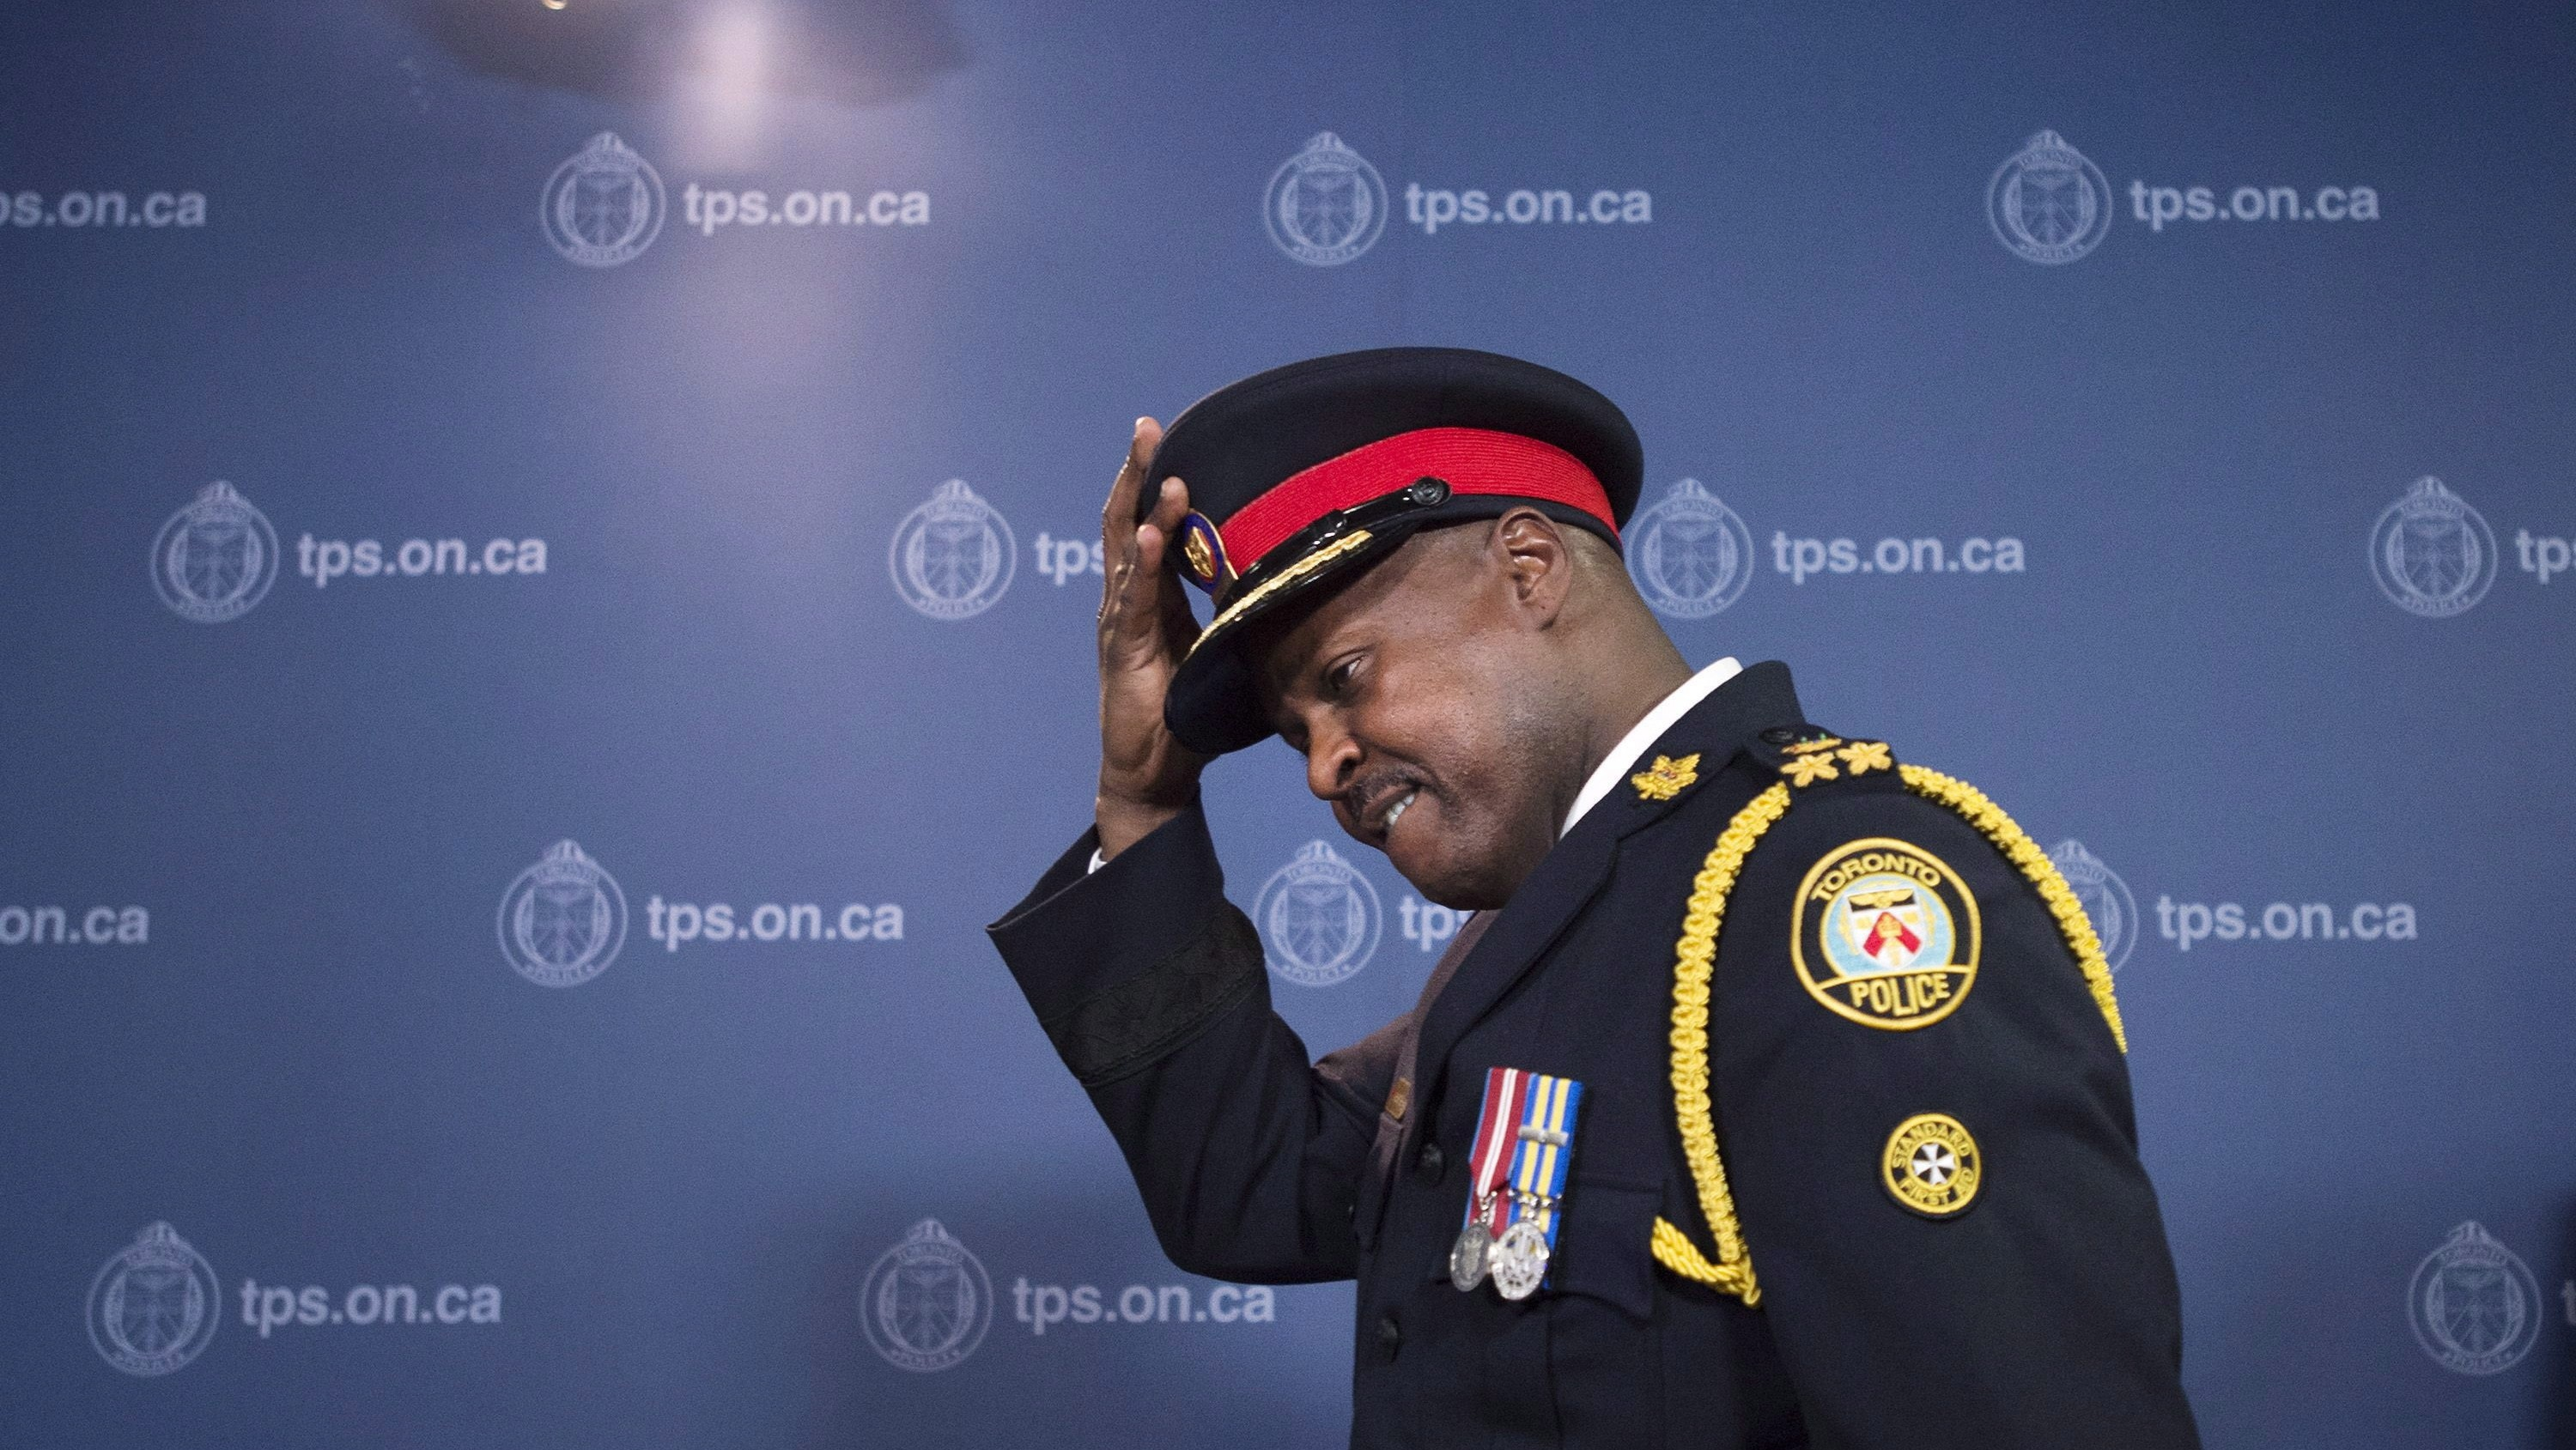 After Years of Outcry, Toronto Could Soon End Controversial Policing Practice